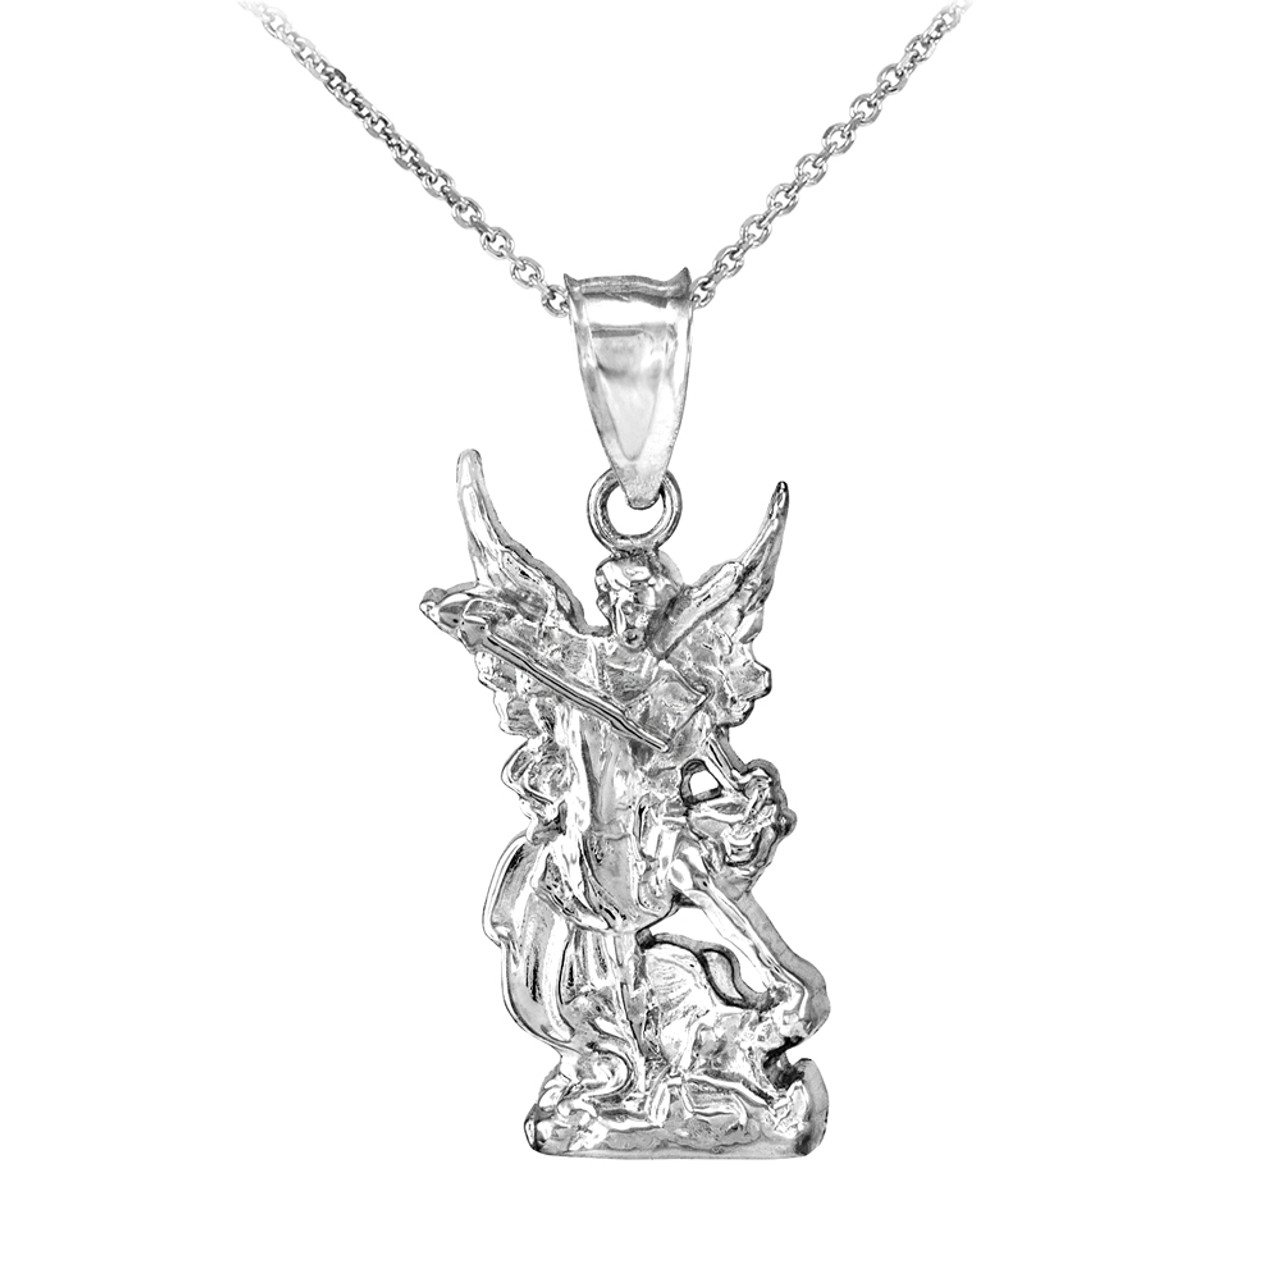 925 sterling silver st michael pendant necklace polished sterling silver st michael pendant necklace aloadofball Gallery